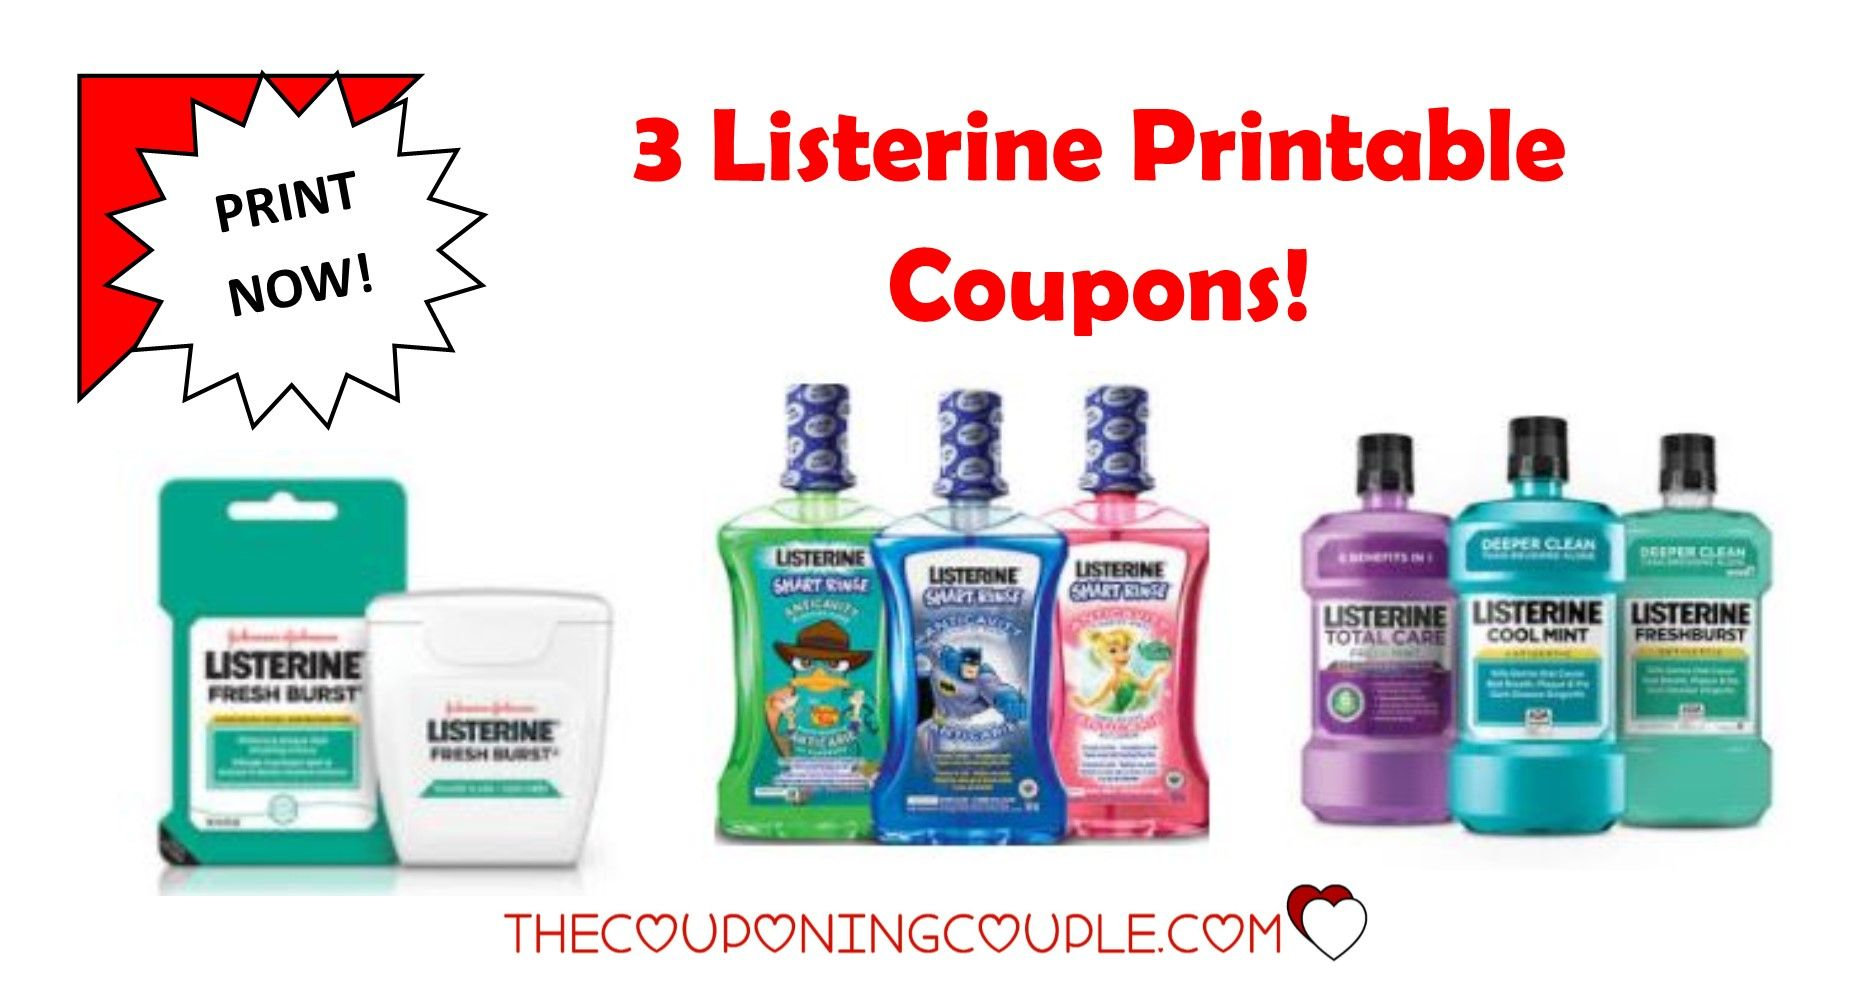 image relating to Listerine Coupons Printable referred to as 3 Contemporary Listerine Printable Coupon codes ~ $3 inside Financial savings! Print By now